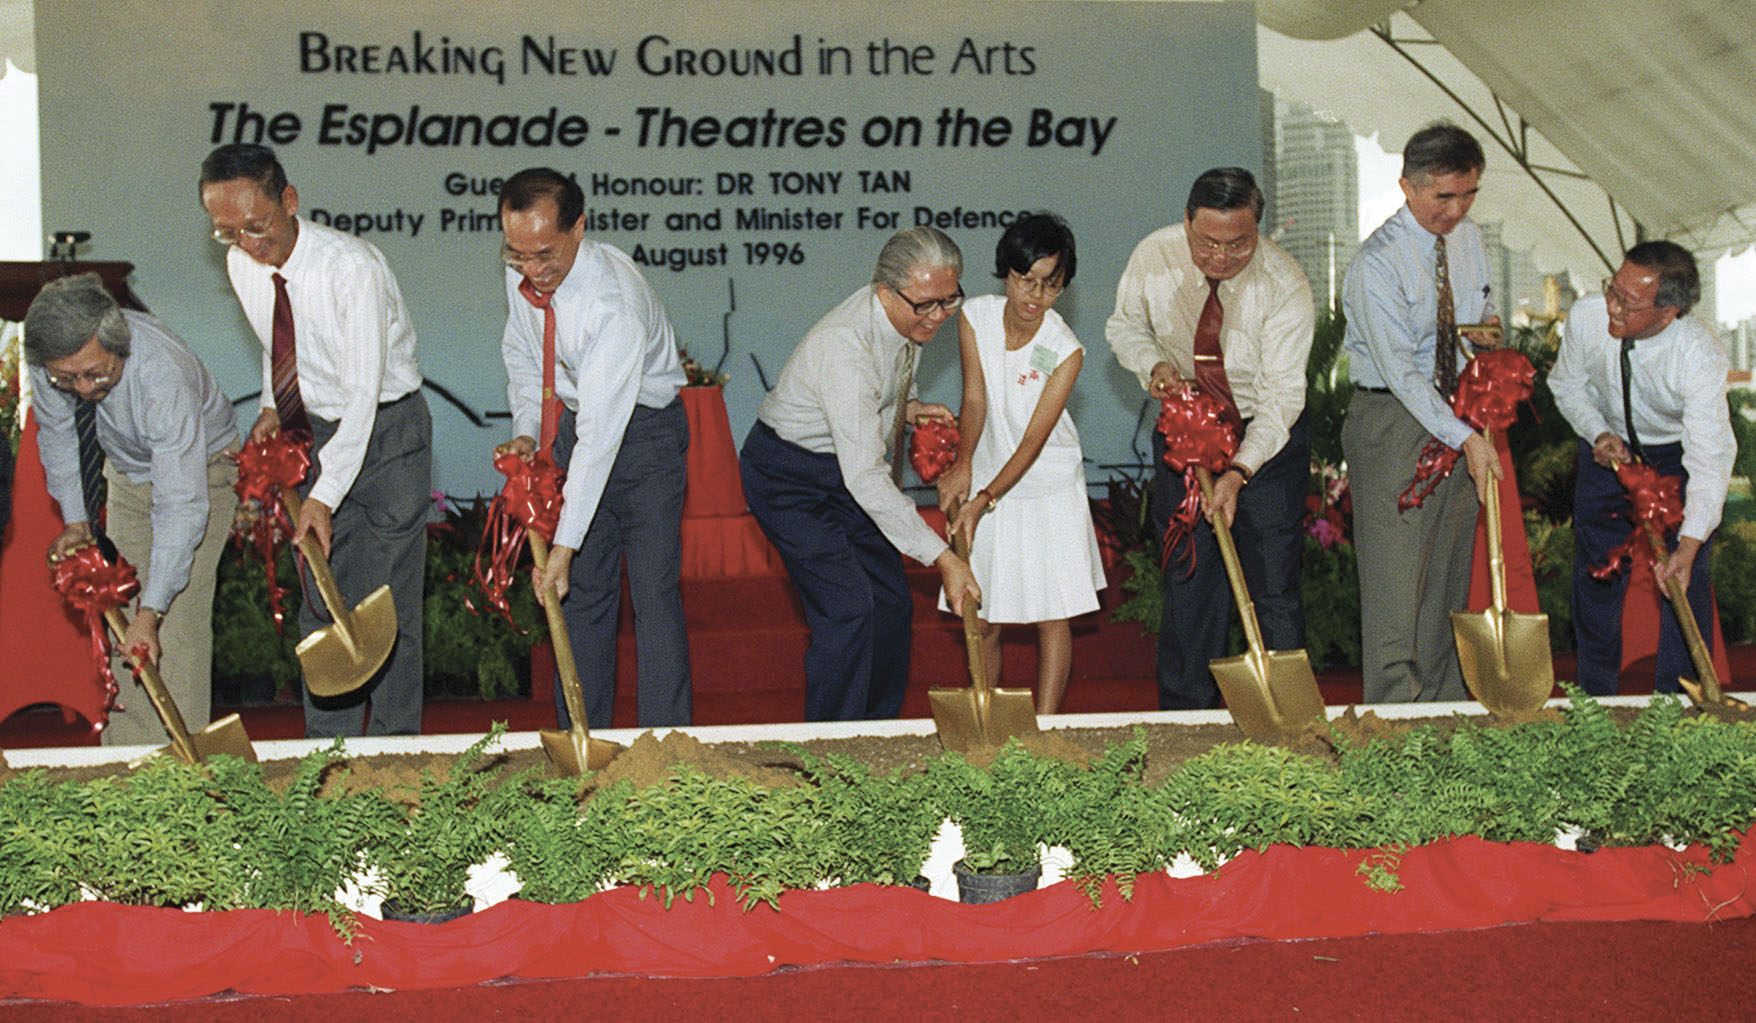 Esplanade's Groundbreaking Ceremony on 11 August 1996. (from left: Steering committee members architect Raymond Woo, Tan Swan Beng of the PUblic Works Department, then Minister for Information and the Arts George Yeo, then Deputy Prime Minister Tony Tan helped by Nanyang High SChool's Ong Ee Sin, then Singapore Arts Centre chairman Robert Iau, then National Arts Council Chairman Liu Thai Ker and DP Architects' Koh Seow Chuan.